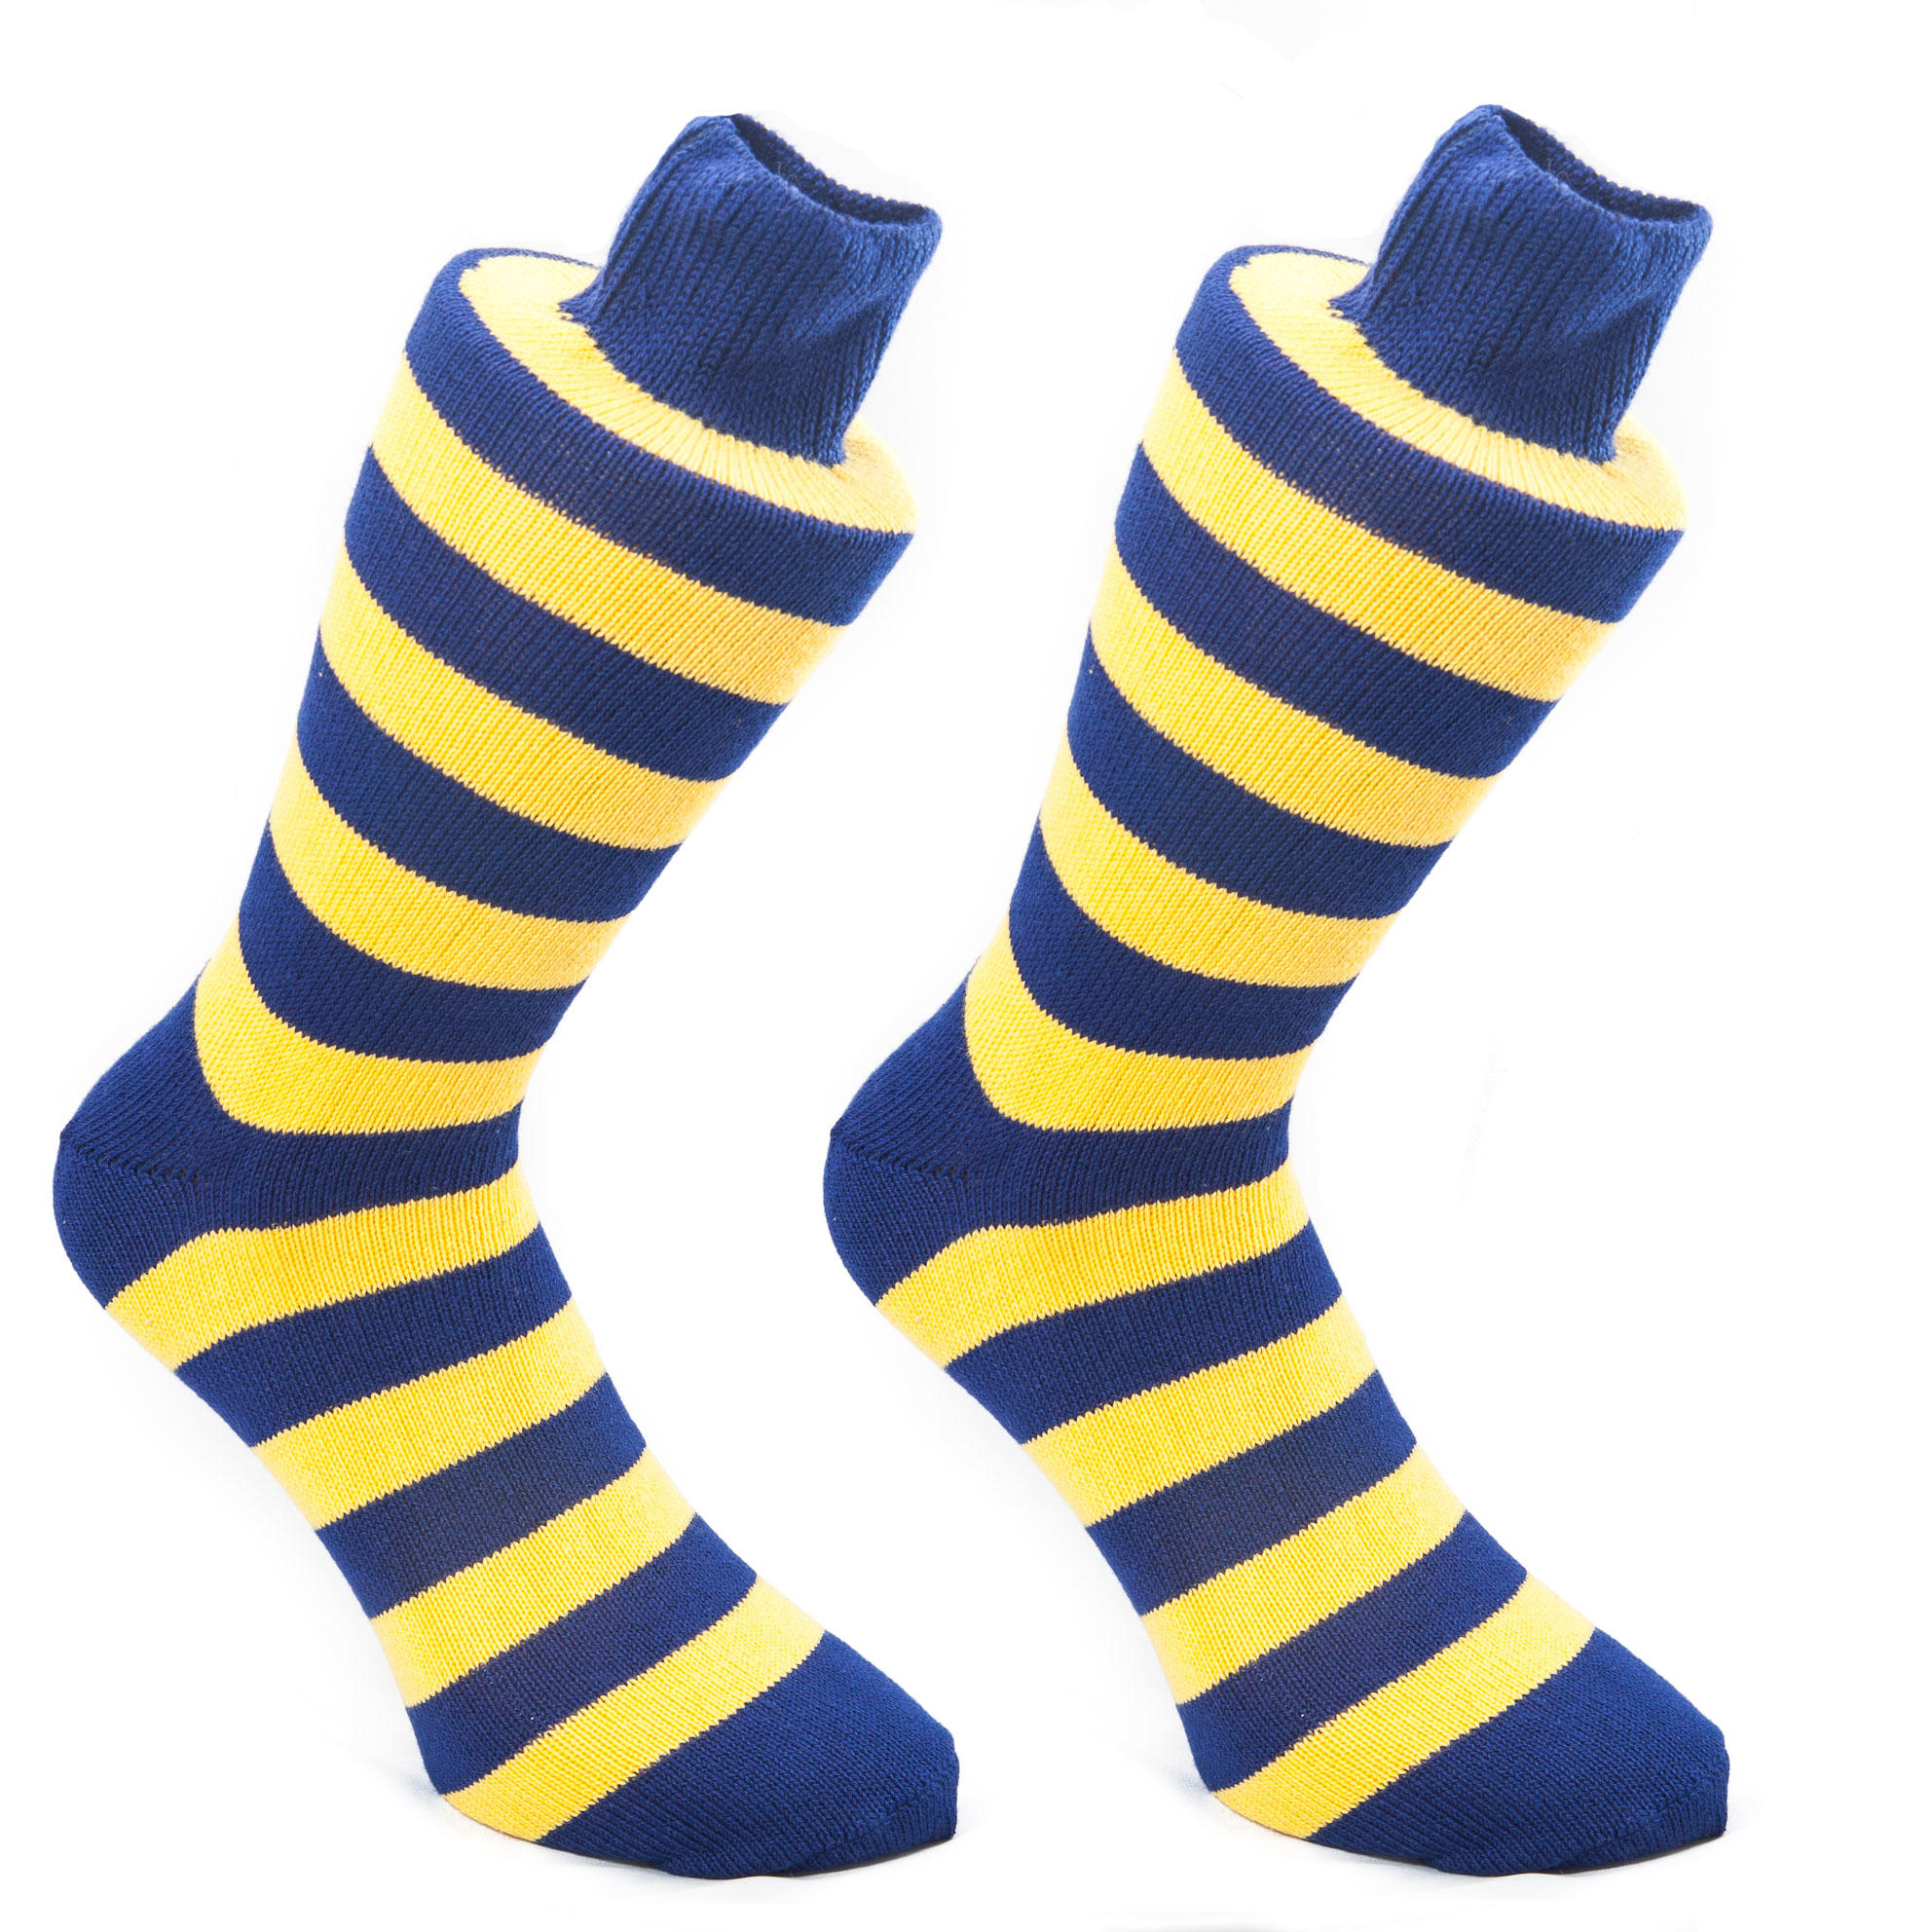 Inky Blue and Gold Stripy Socks| SOCK CLUB® from Cuffs & Co